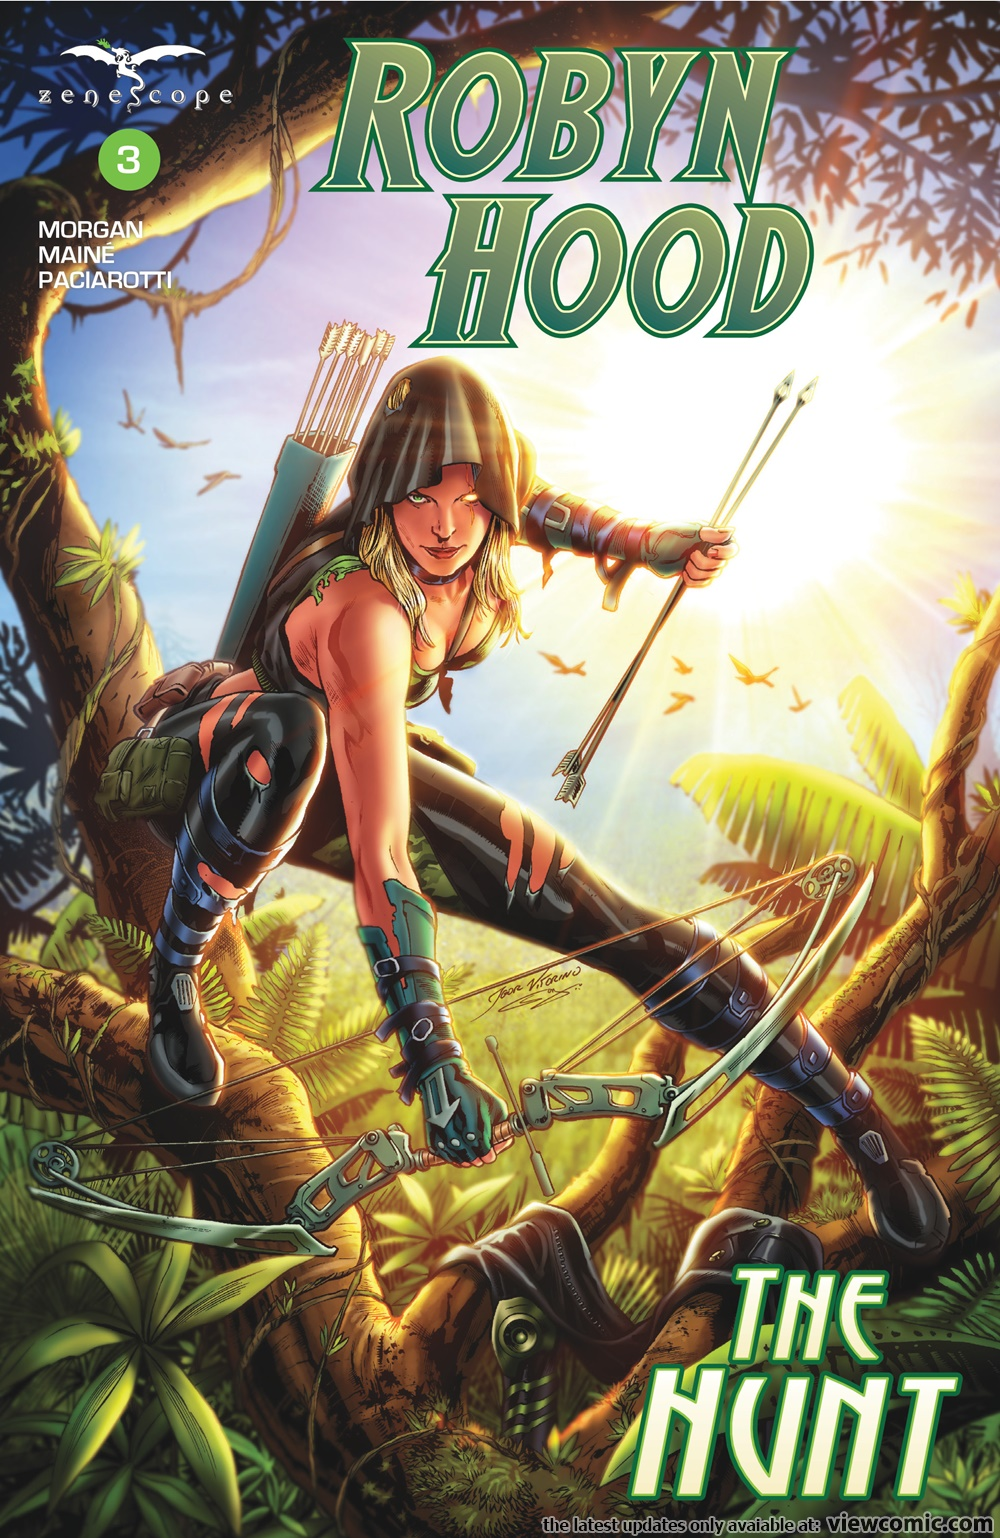 ROBYN HOOD: THE HUNT 03